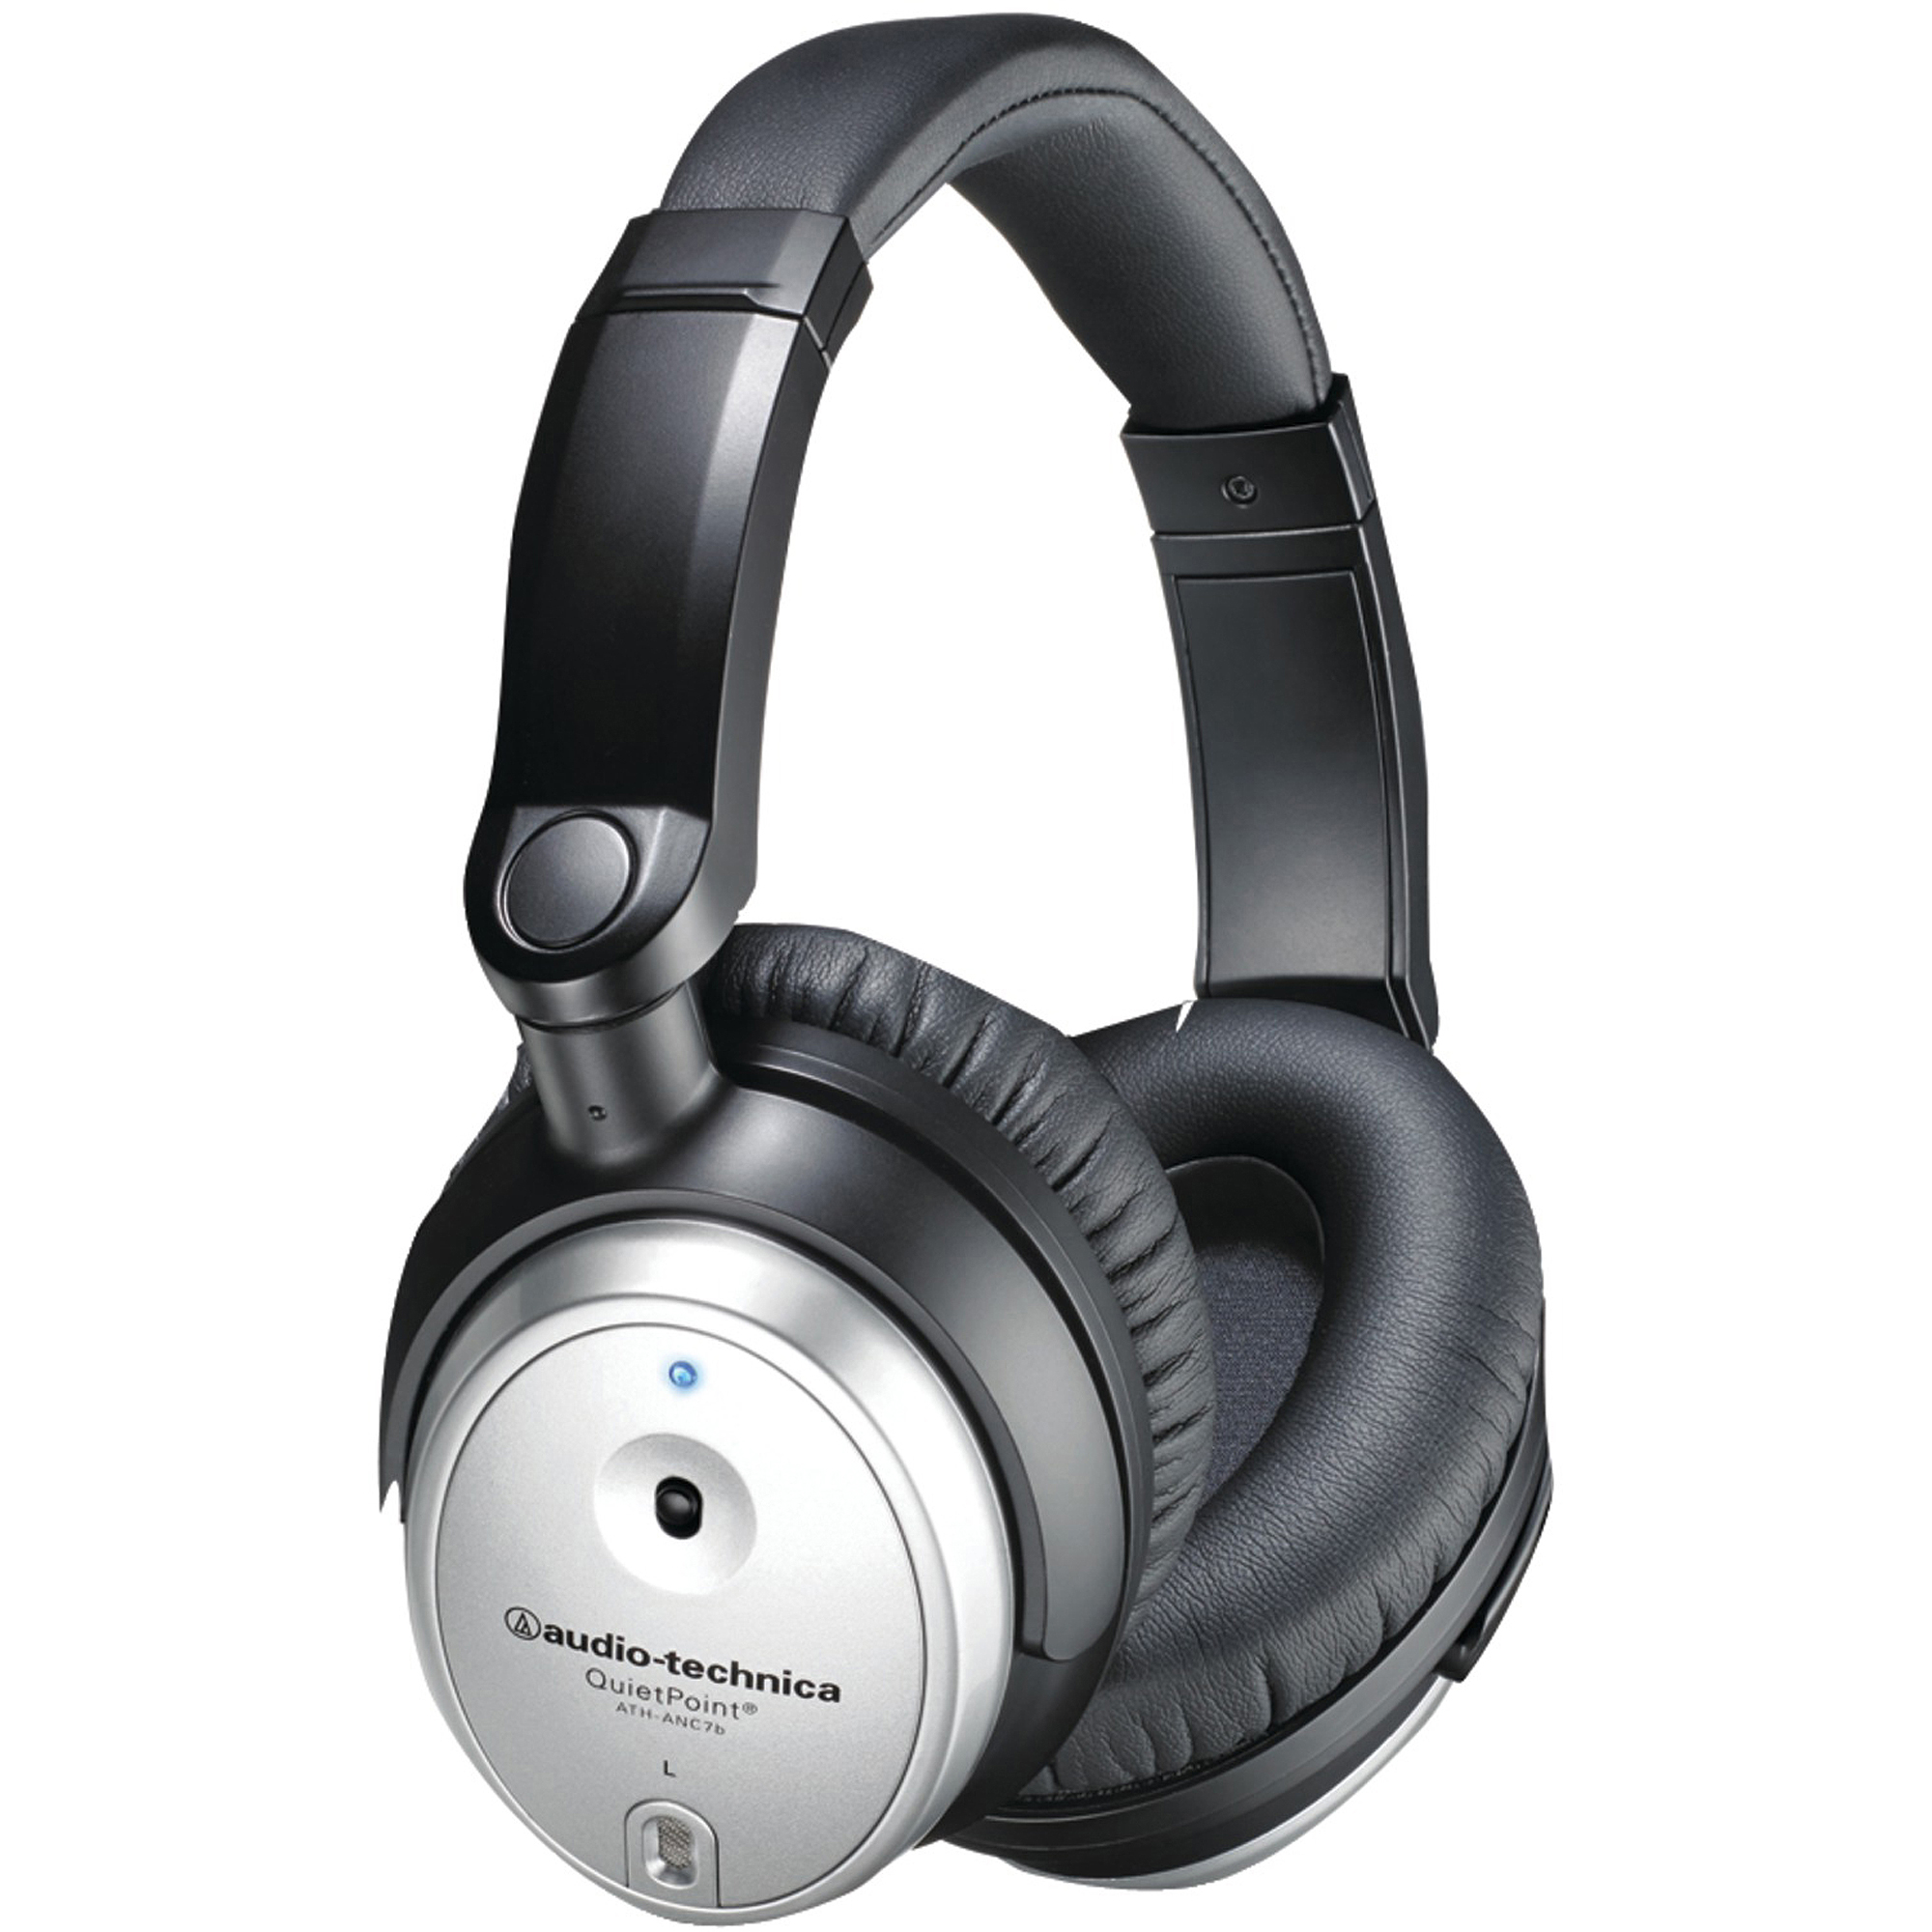 Audio-Technica Active Noise-Cancelling Headphones, ATH-ANC7BSVIS